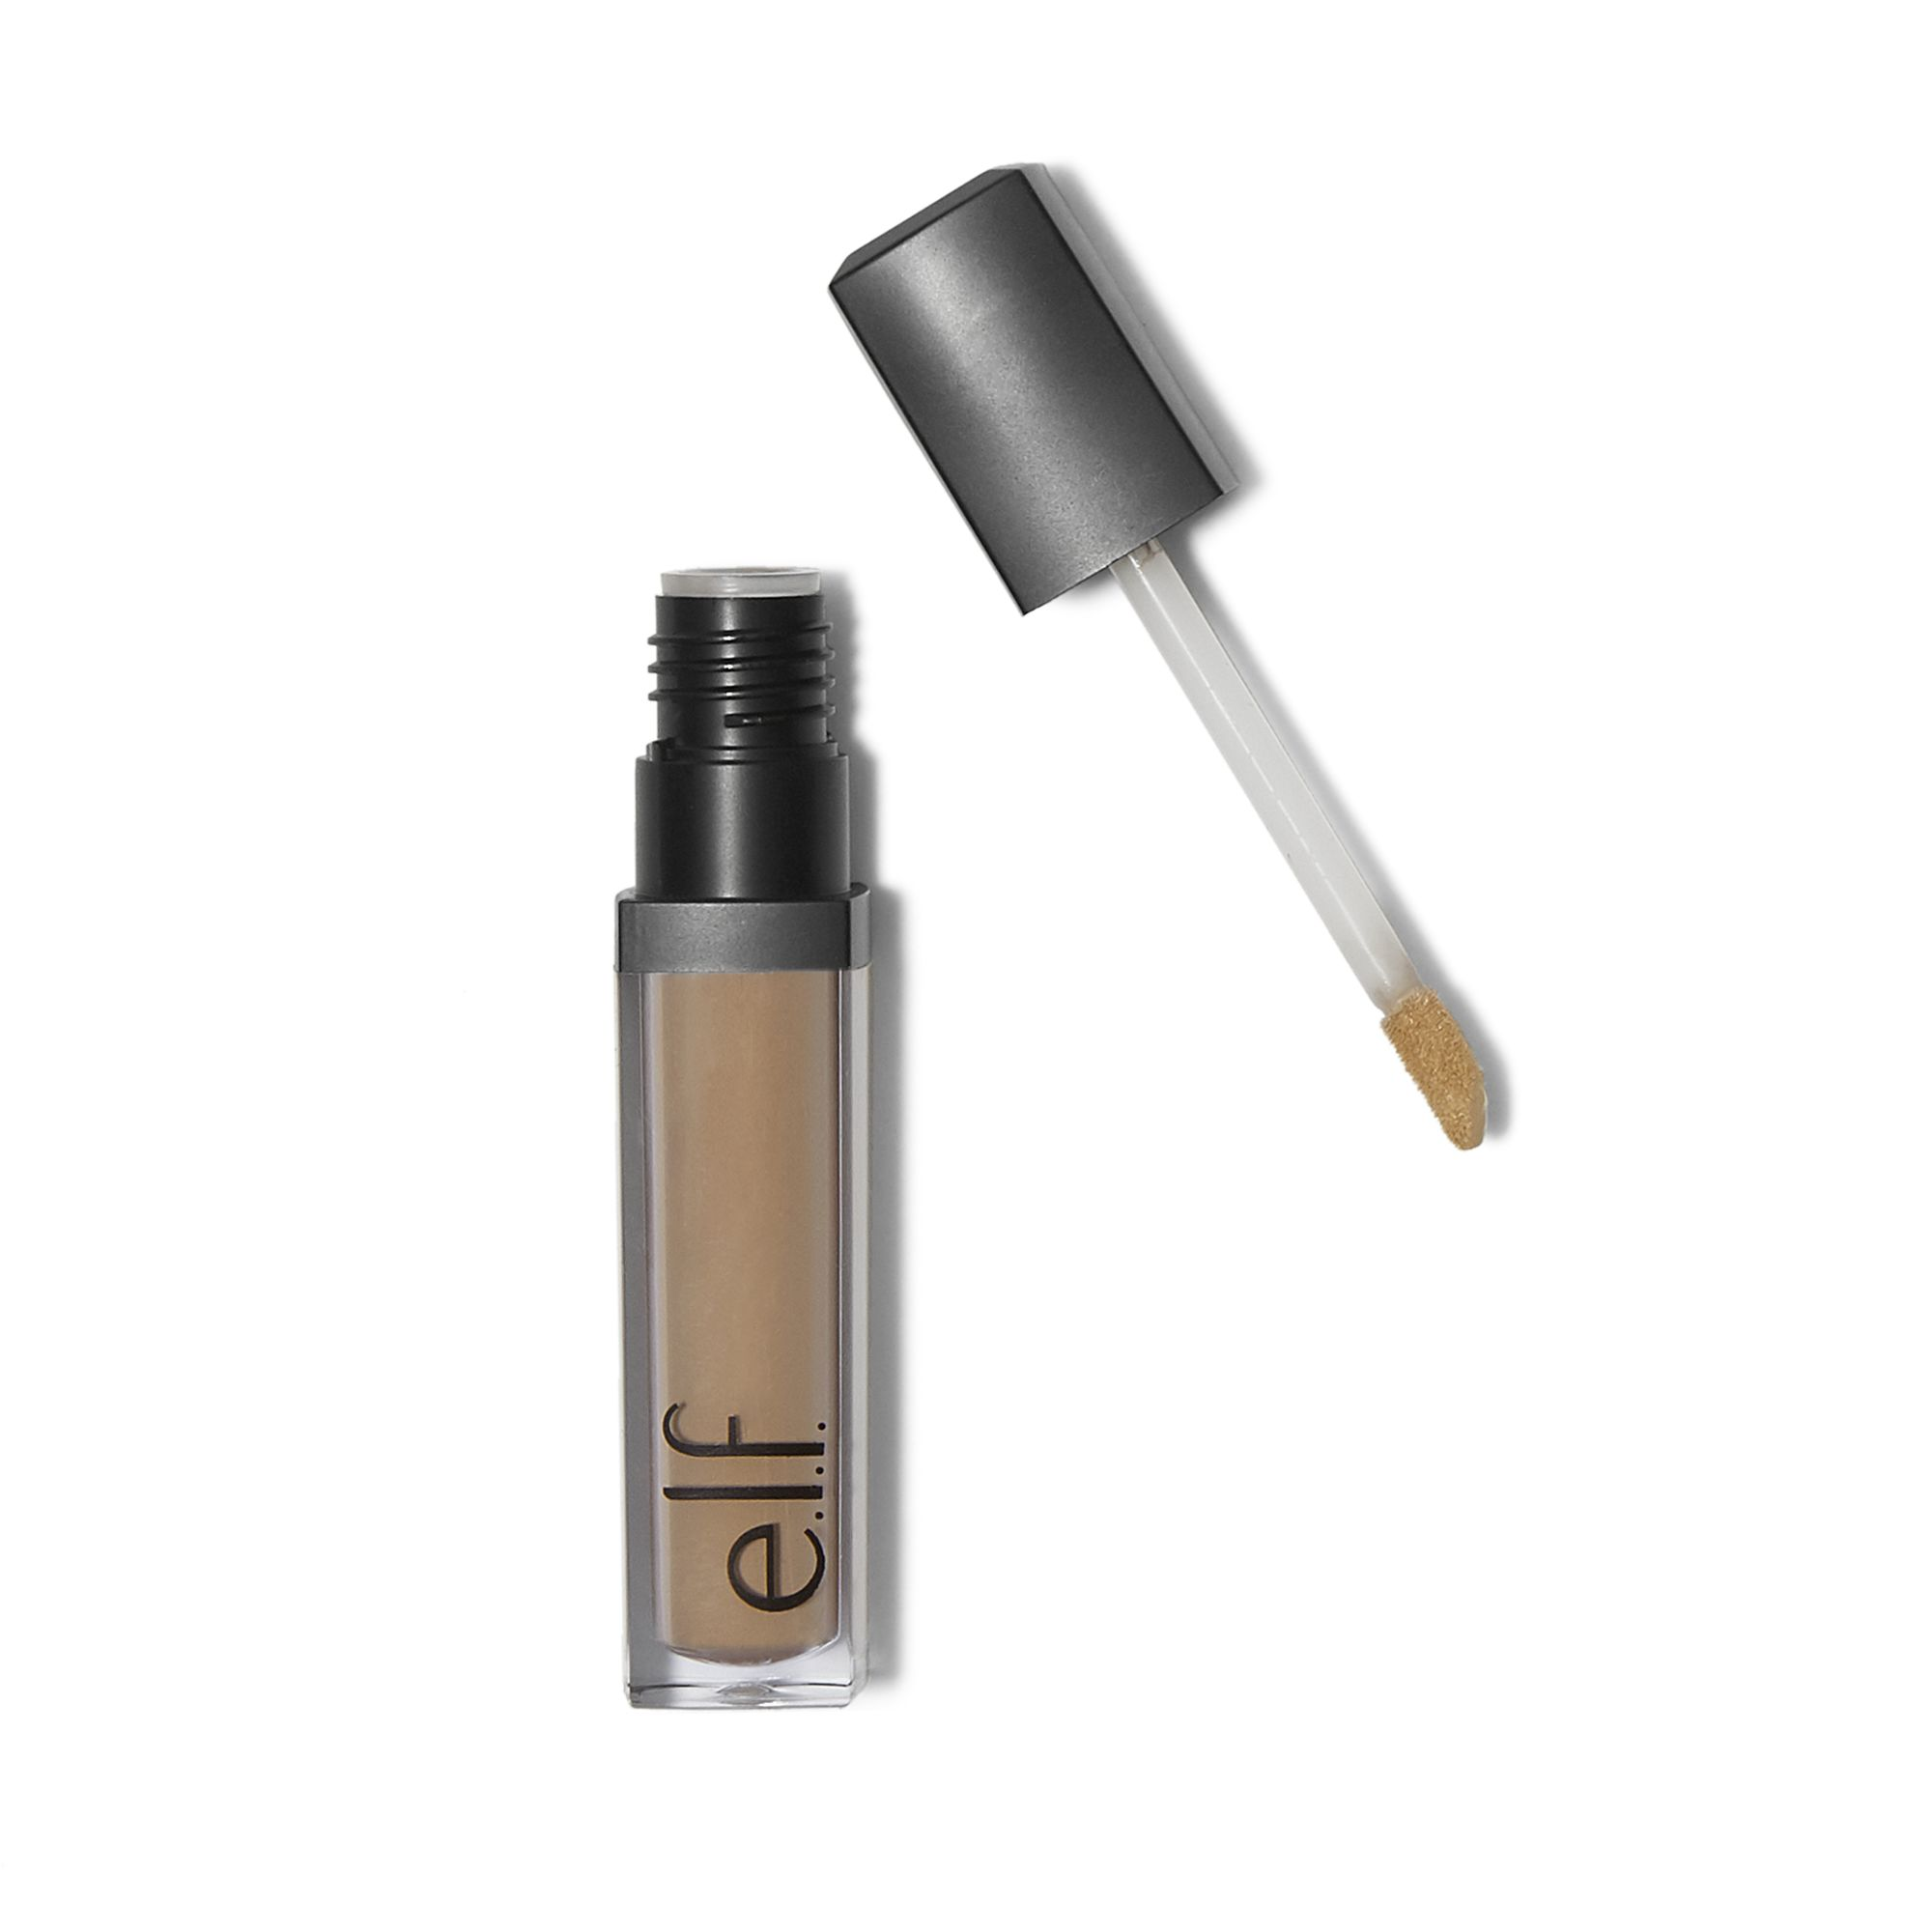 Elf HD Lifting Concealer